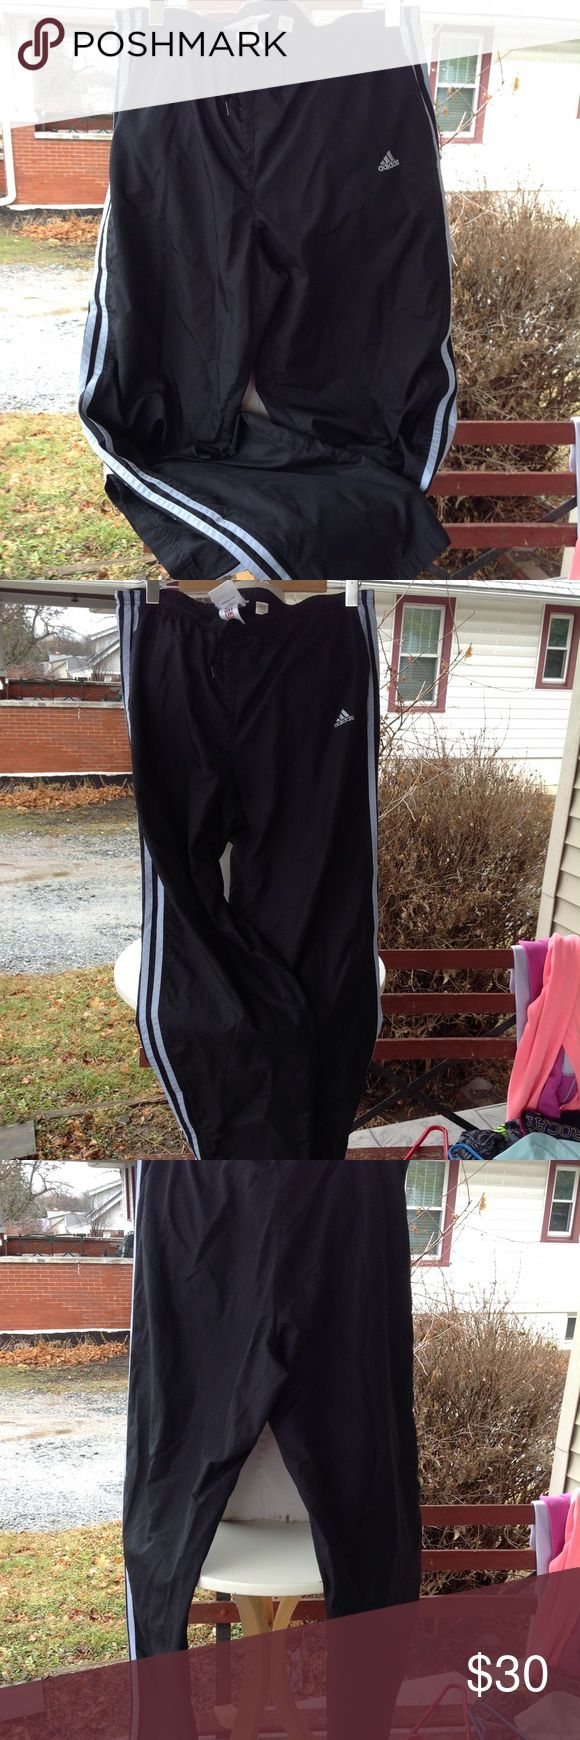 Mens Adidas Pants. Size large, black, has pockets, in great condition. adidas Pants Sweatpants & Joggers